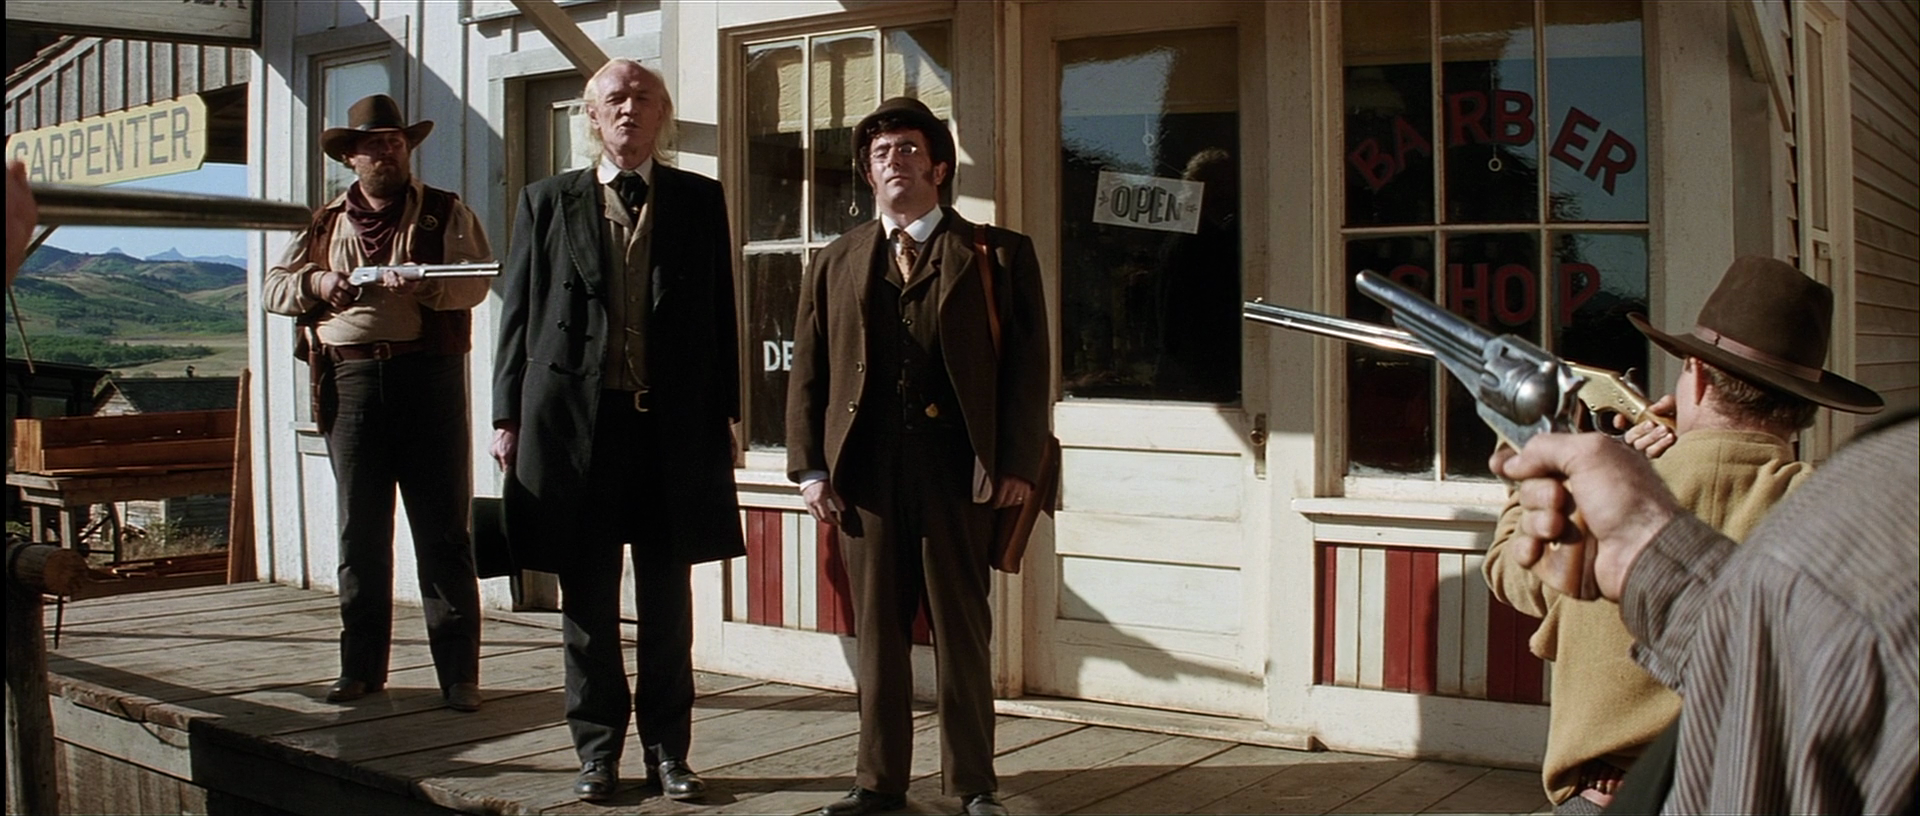 English Bob [Left] and W.W. Beauchamp [Right] being confronted by Little Bill's Deputies in Big Whiskey.